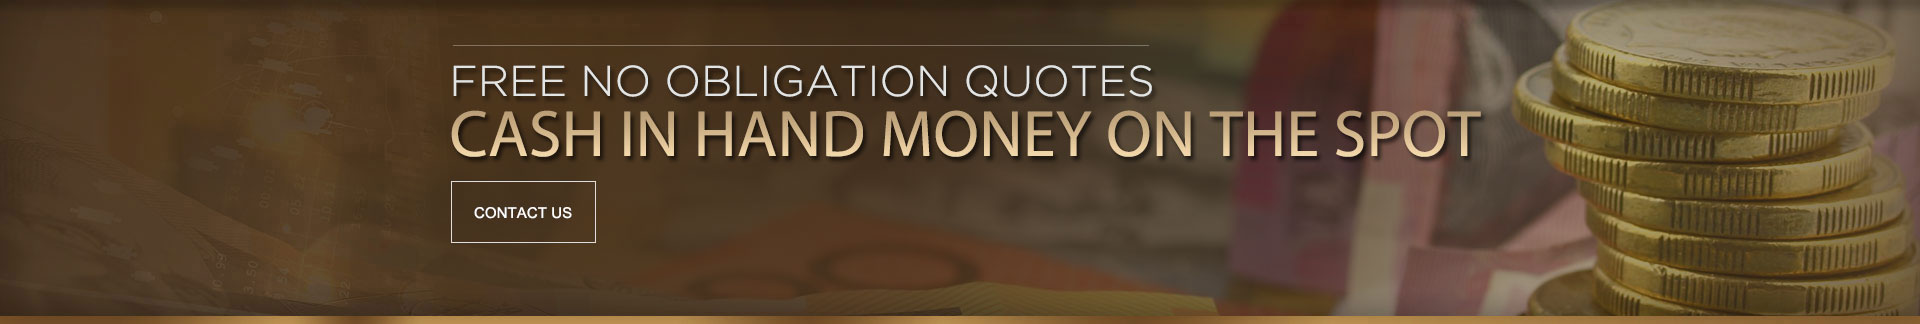 Free No Obligation Quotes - Cash in hand money on the spot